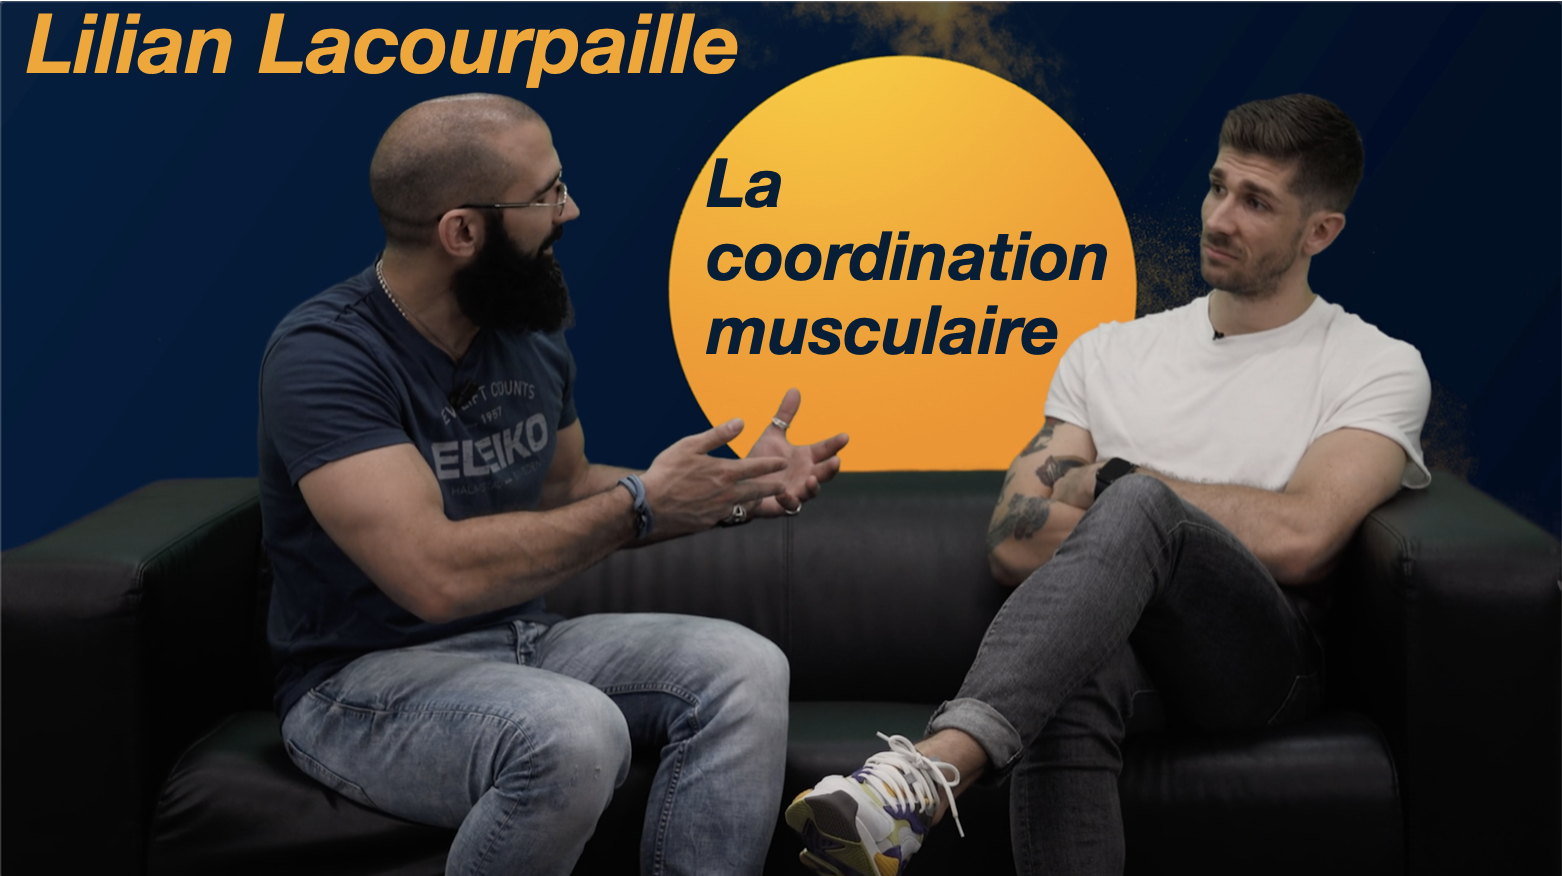 Coordination musculaire